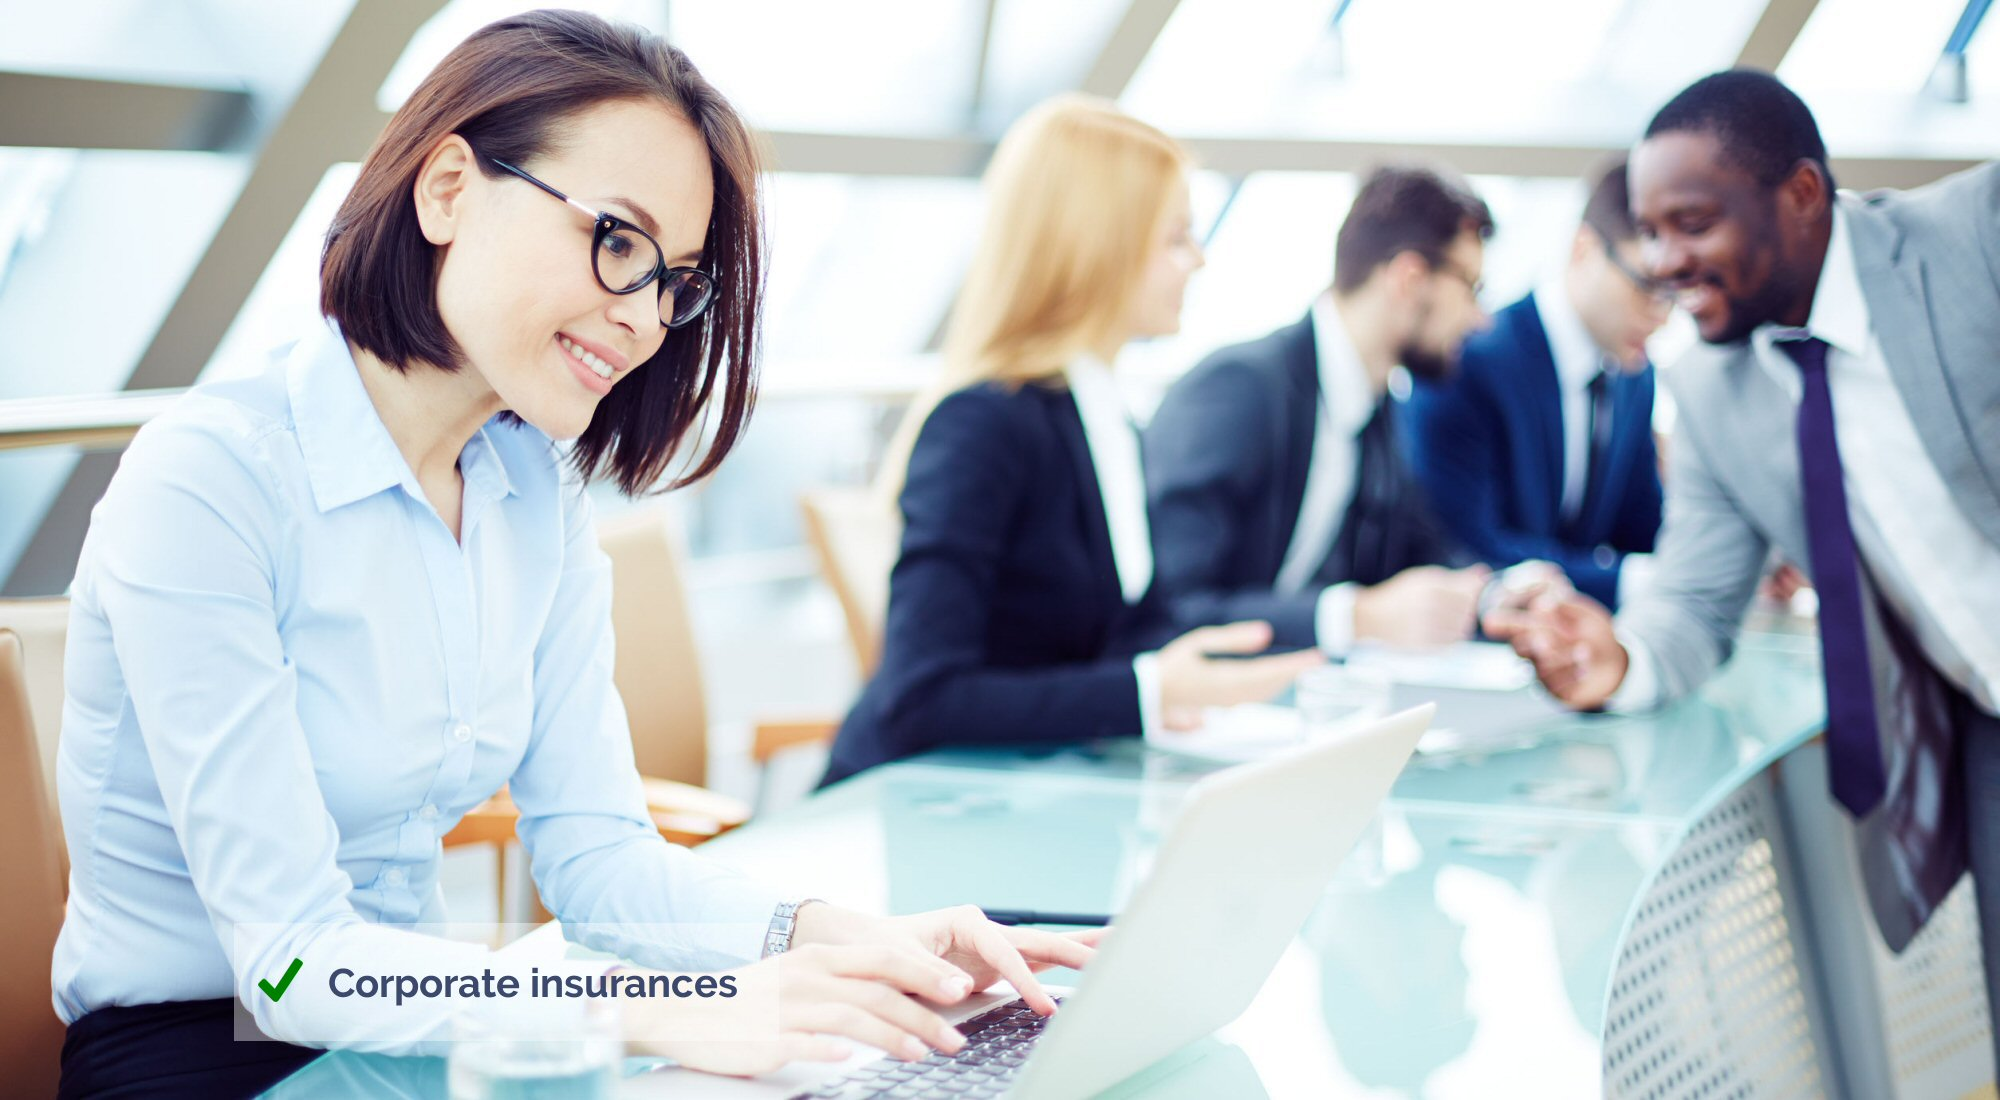 Corporate insurances in Spain